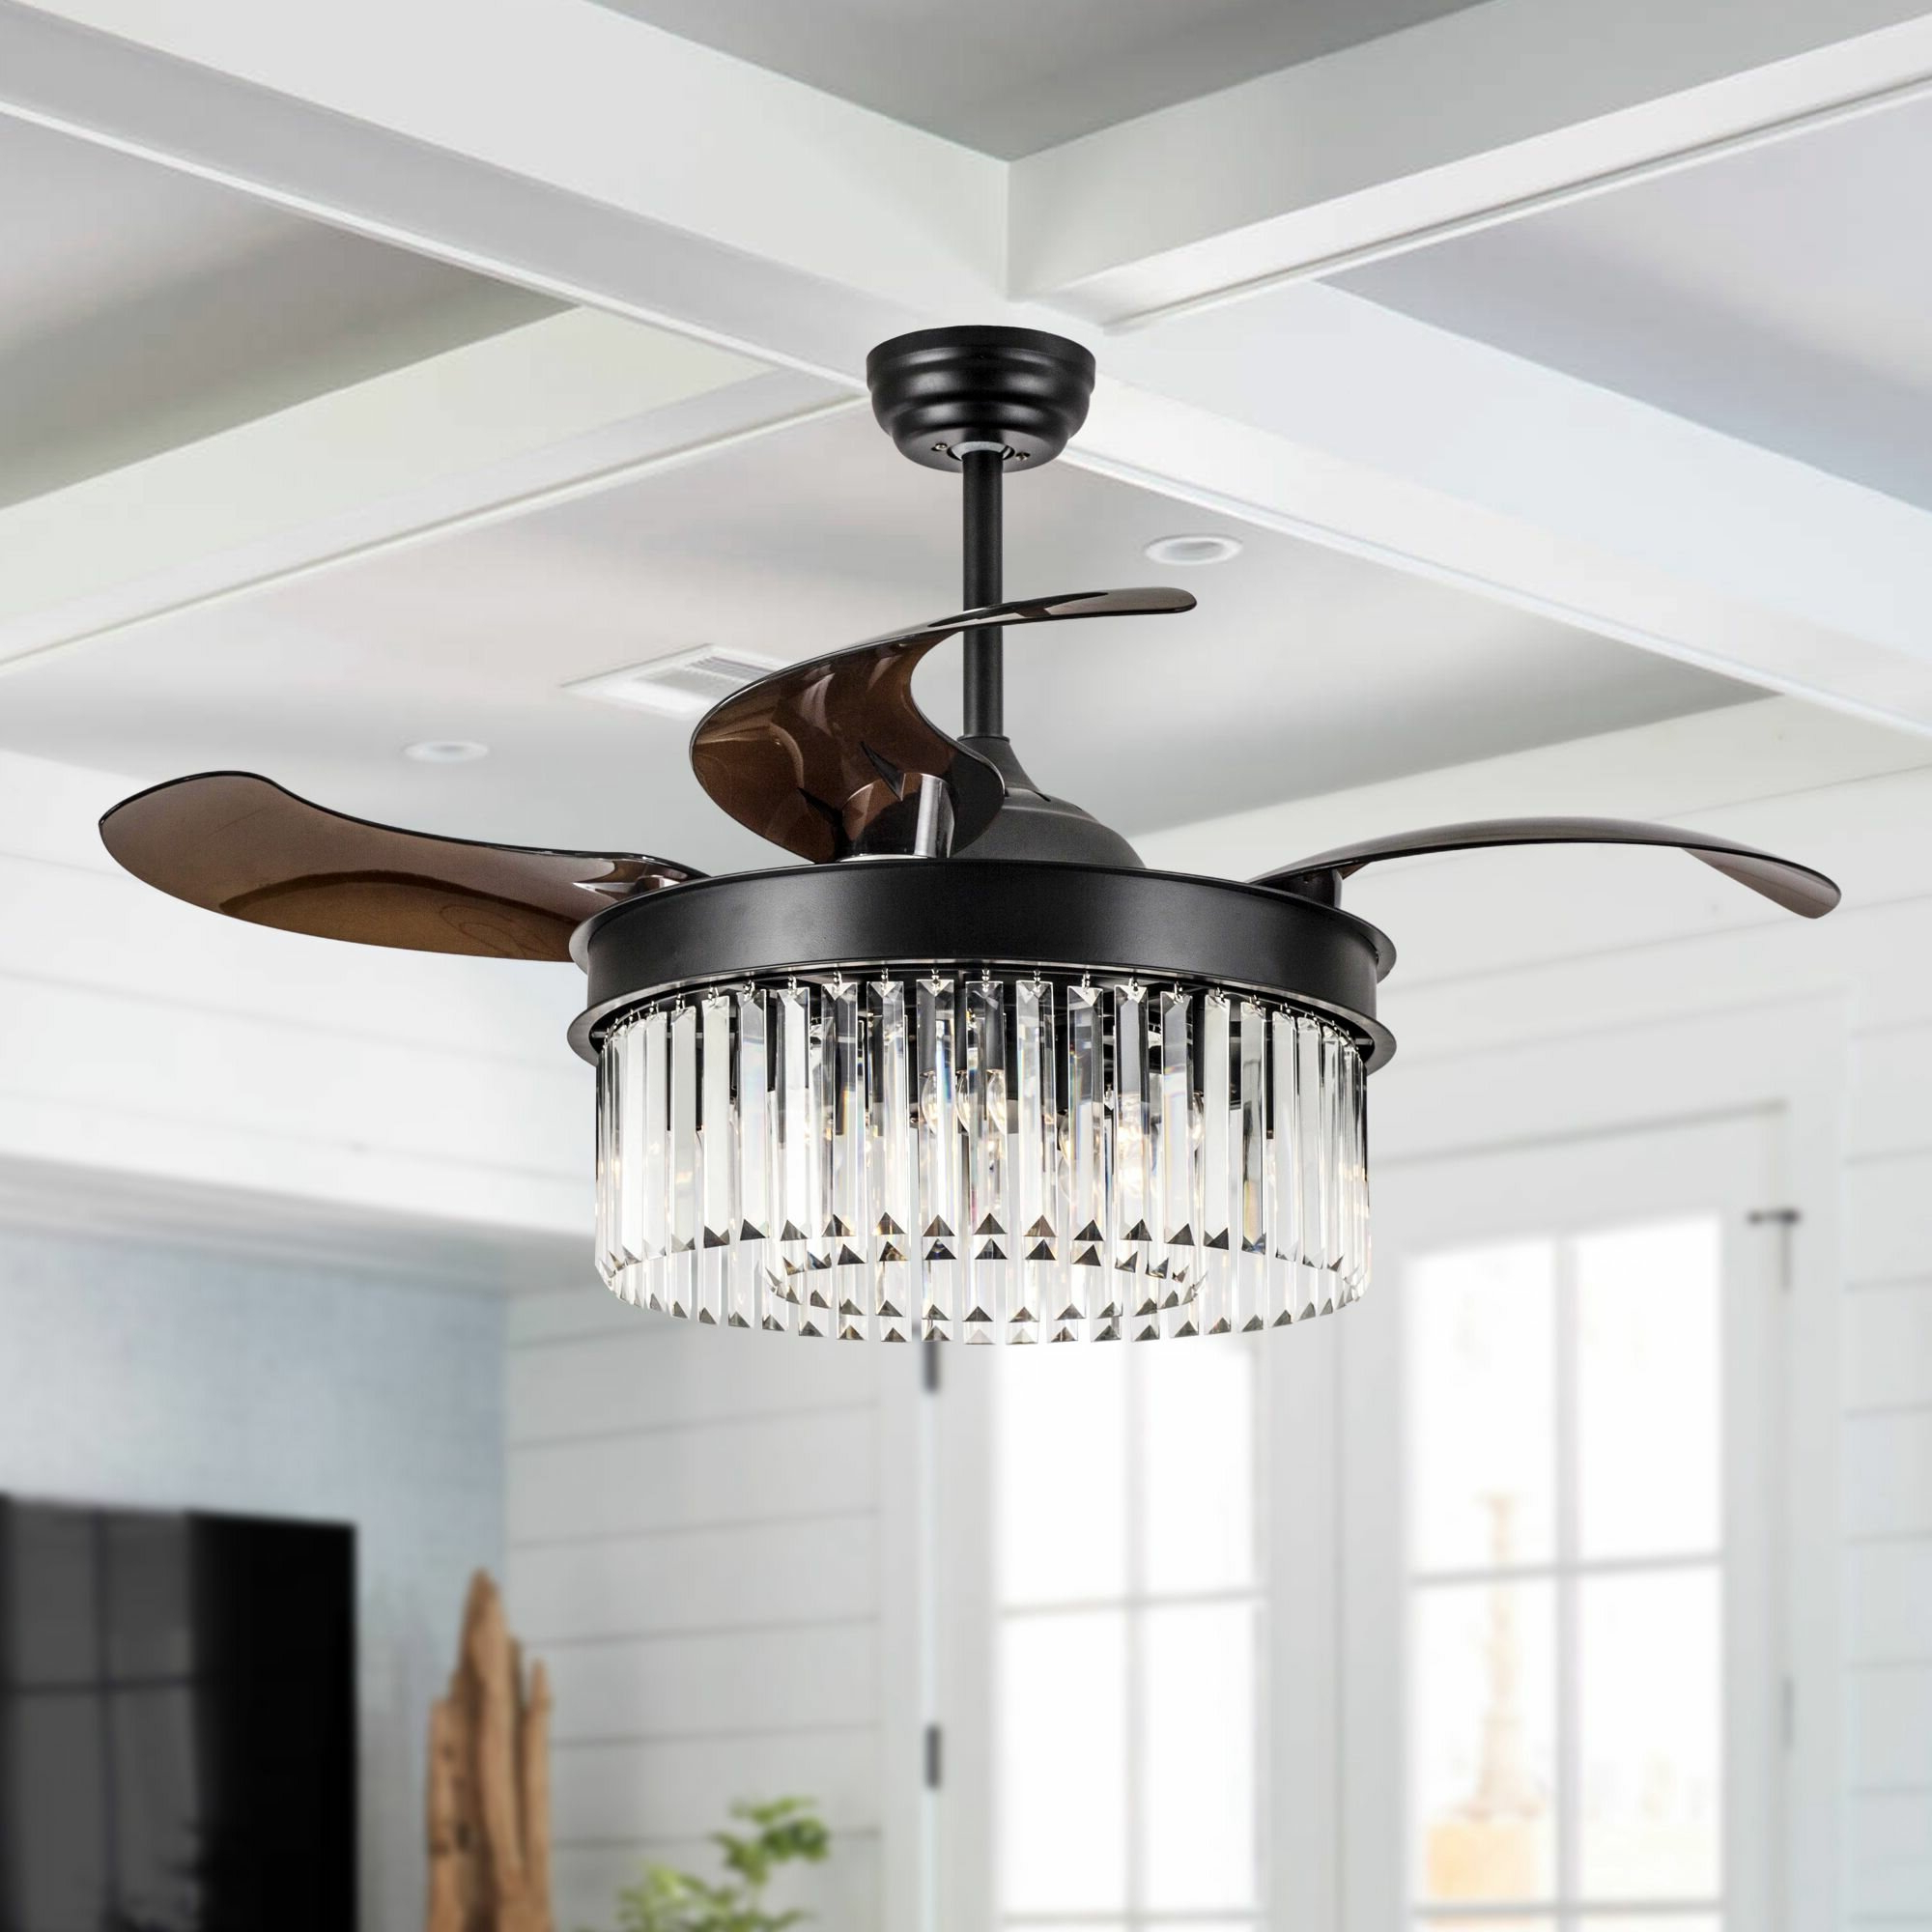 2019 Schulze Crystal Retractable 4 Blade Ceiling Fan With Remote, Light Kit Included Throughout Servantes Retractable 4 Blade Ceiling Fans With Remote (Gallery 5 of 20)